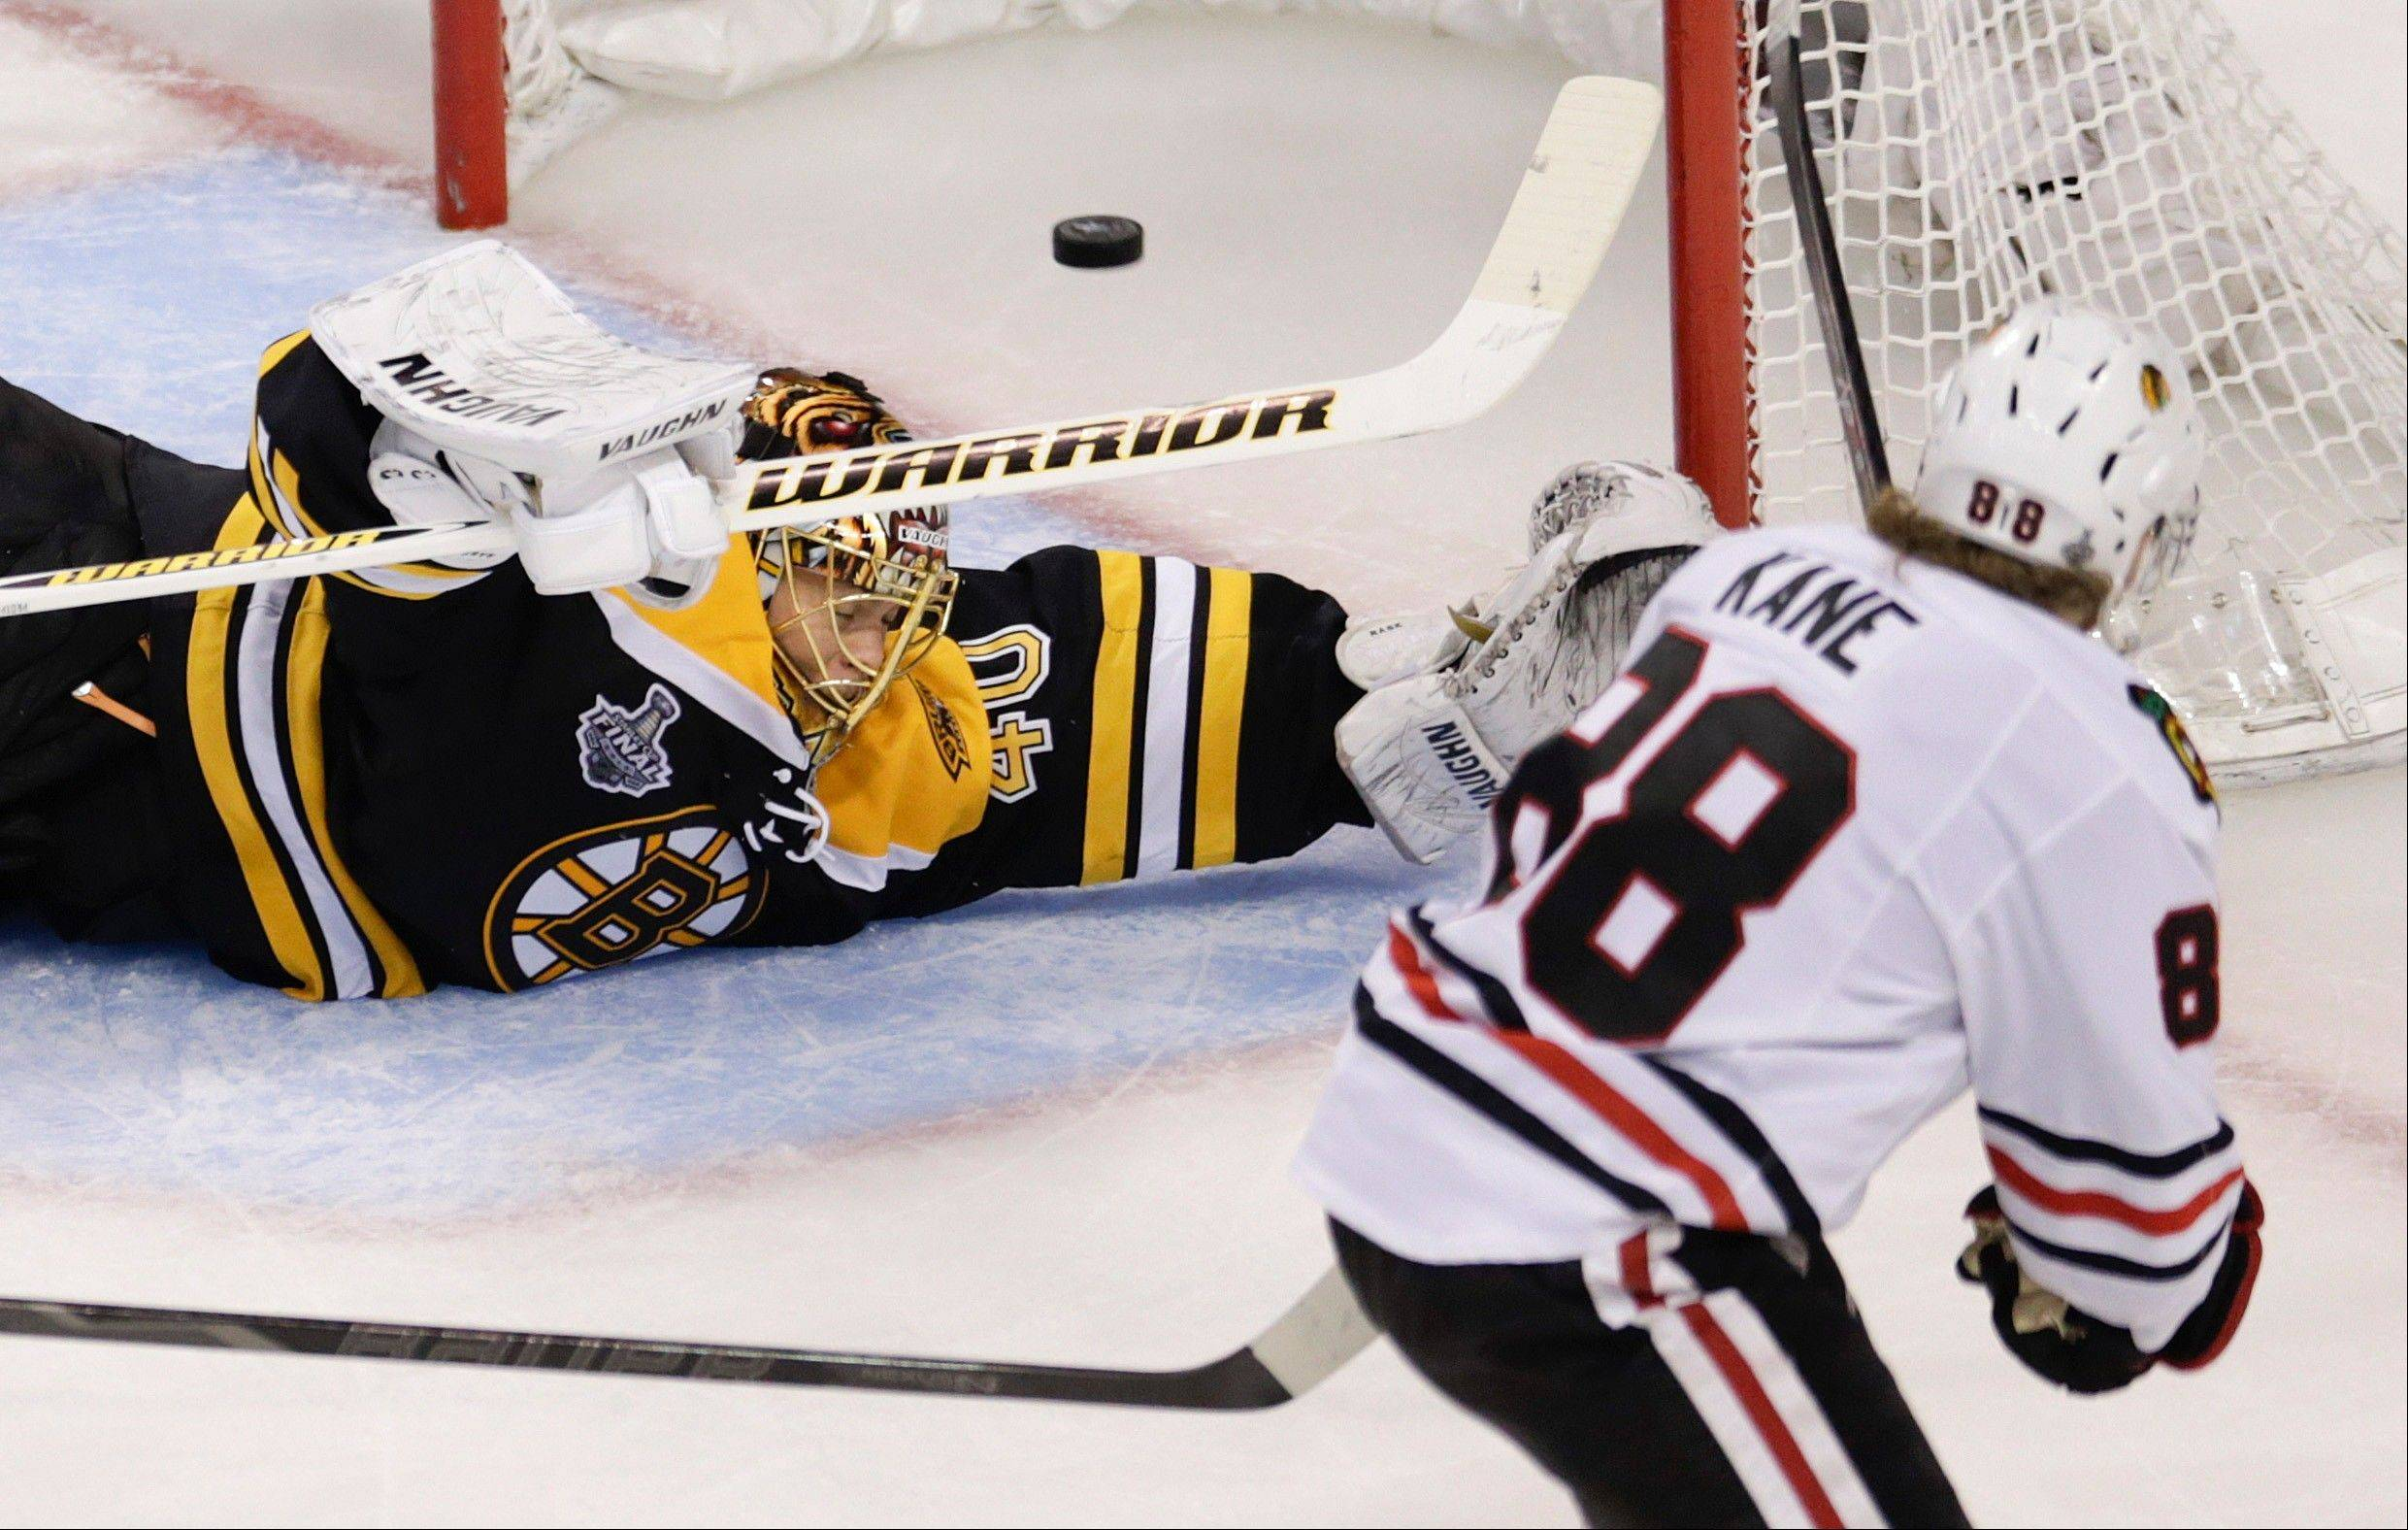 Chicago Blackhawks right wing Patrick Kane (88) scores past Boston Bruins goalie Tuukka Rask (40), of Finland, during the second period in Game 4 of the NHL hockey Stanley Cup Finals.